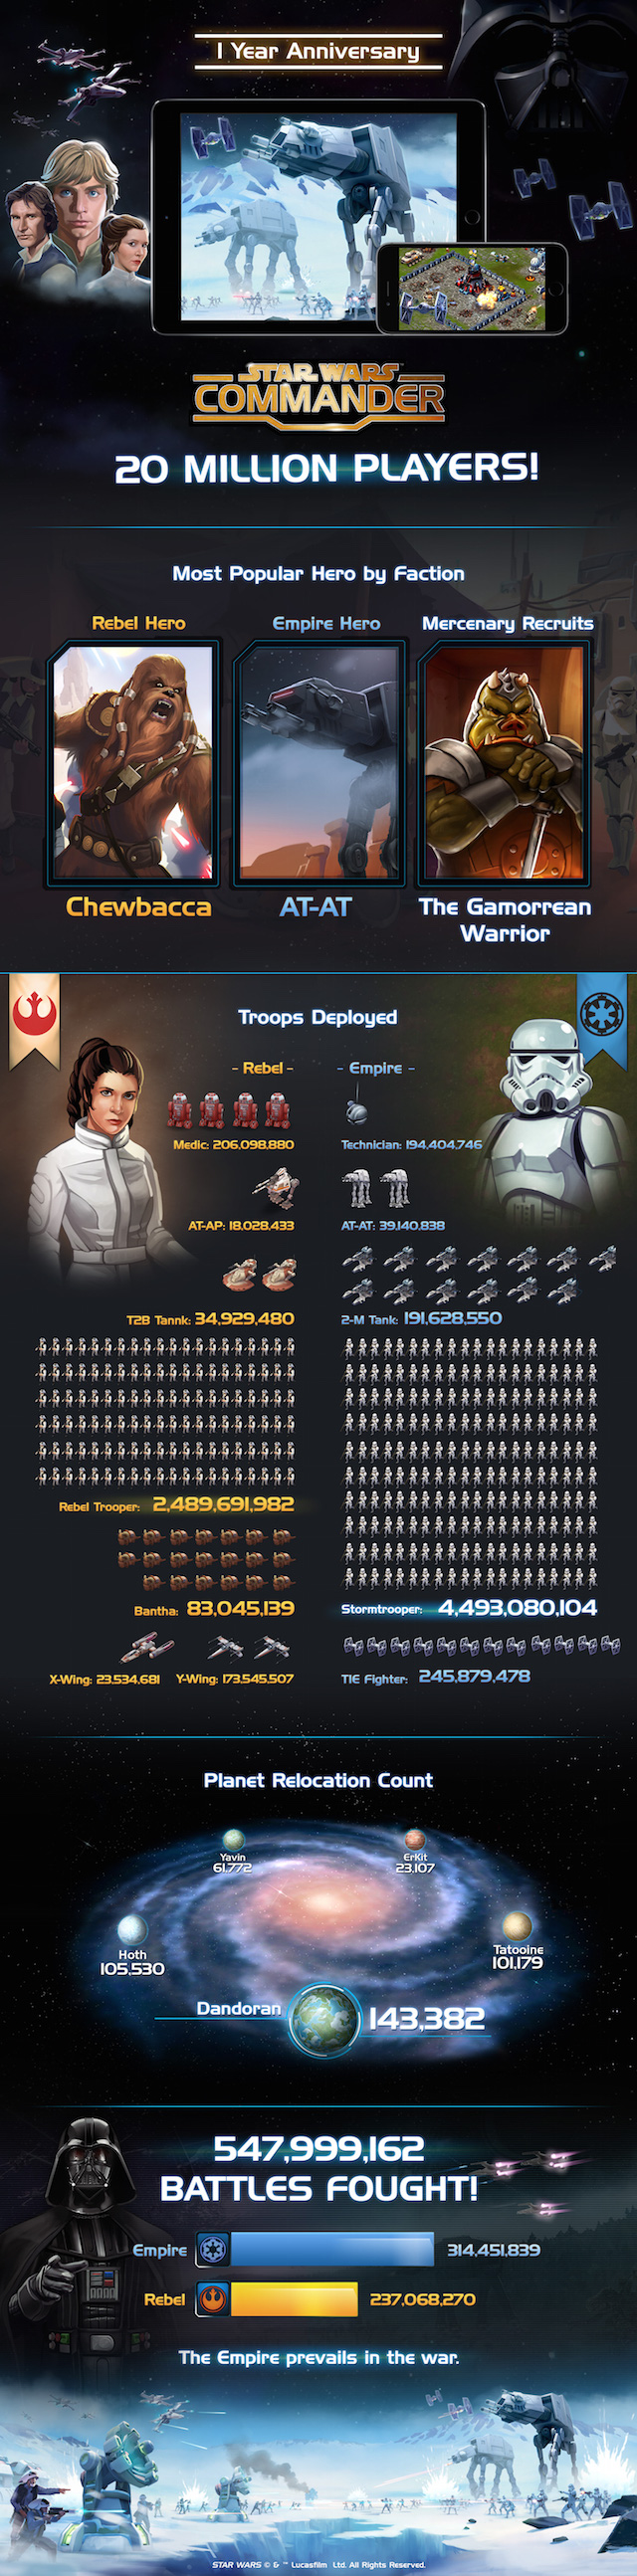 Star-Wars-Commander-Infographic1